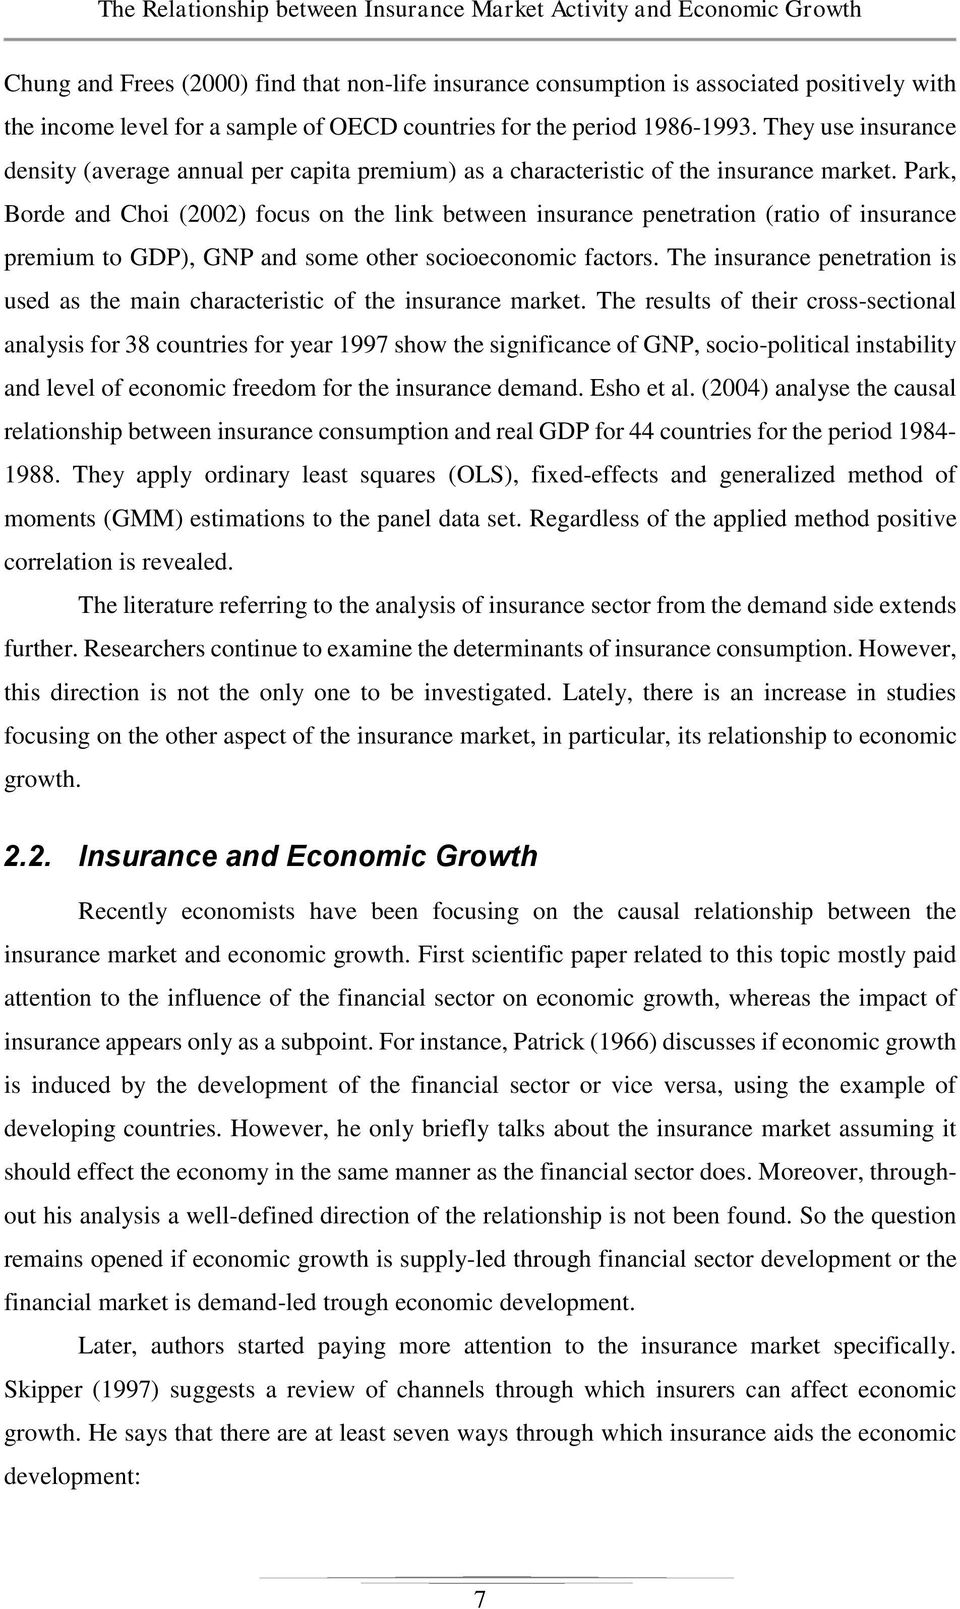 Park, Borde and Choi (2002) focus on the link between insurance penetration (ratio of insurance premium to GDP), GNP and some other socioeconomic factors.